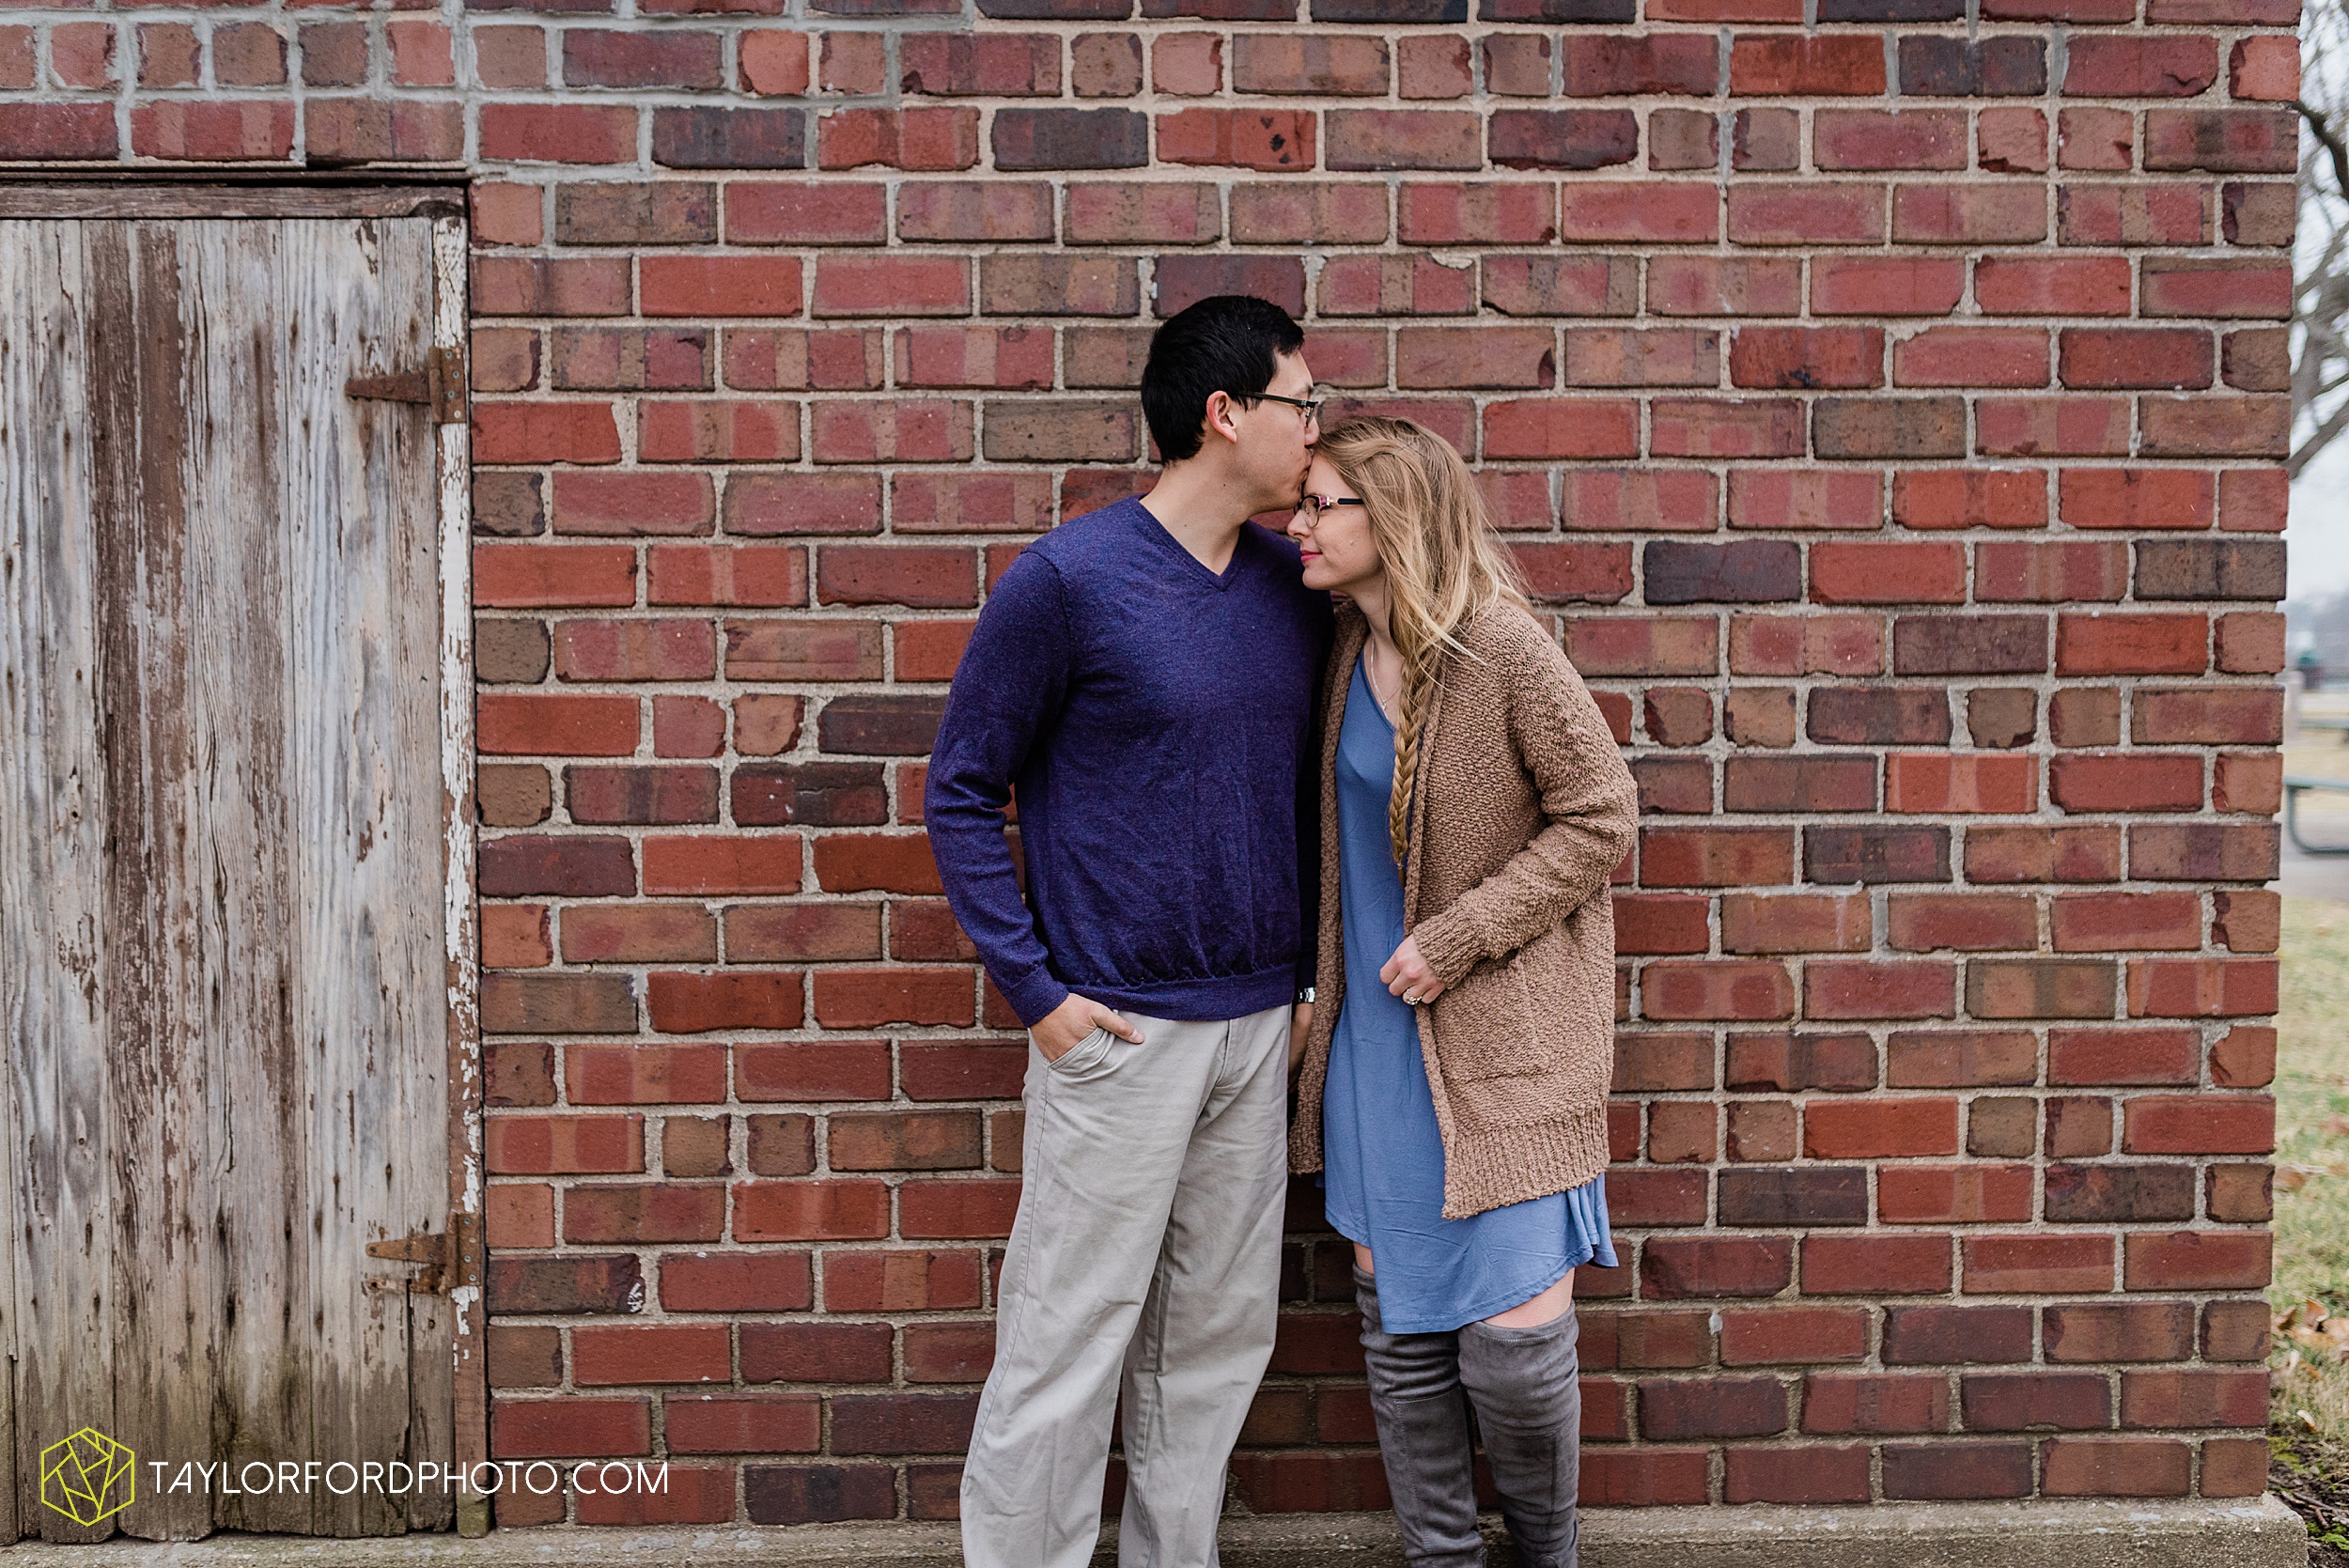 at-home-fidler-pond-park-downtown-goshen-indiana-engagement-photography-taylor-ford-hirschy-photographer_1994.jpg